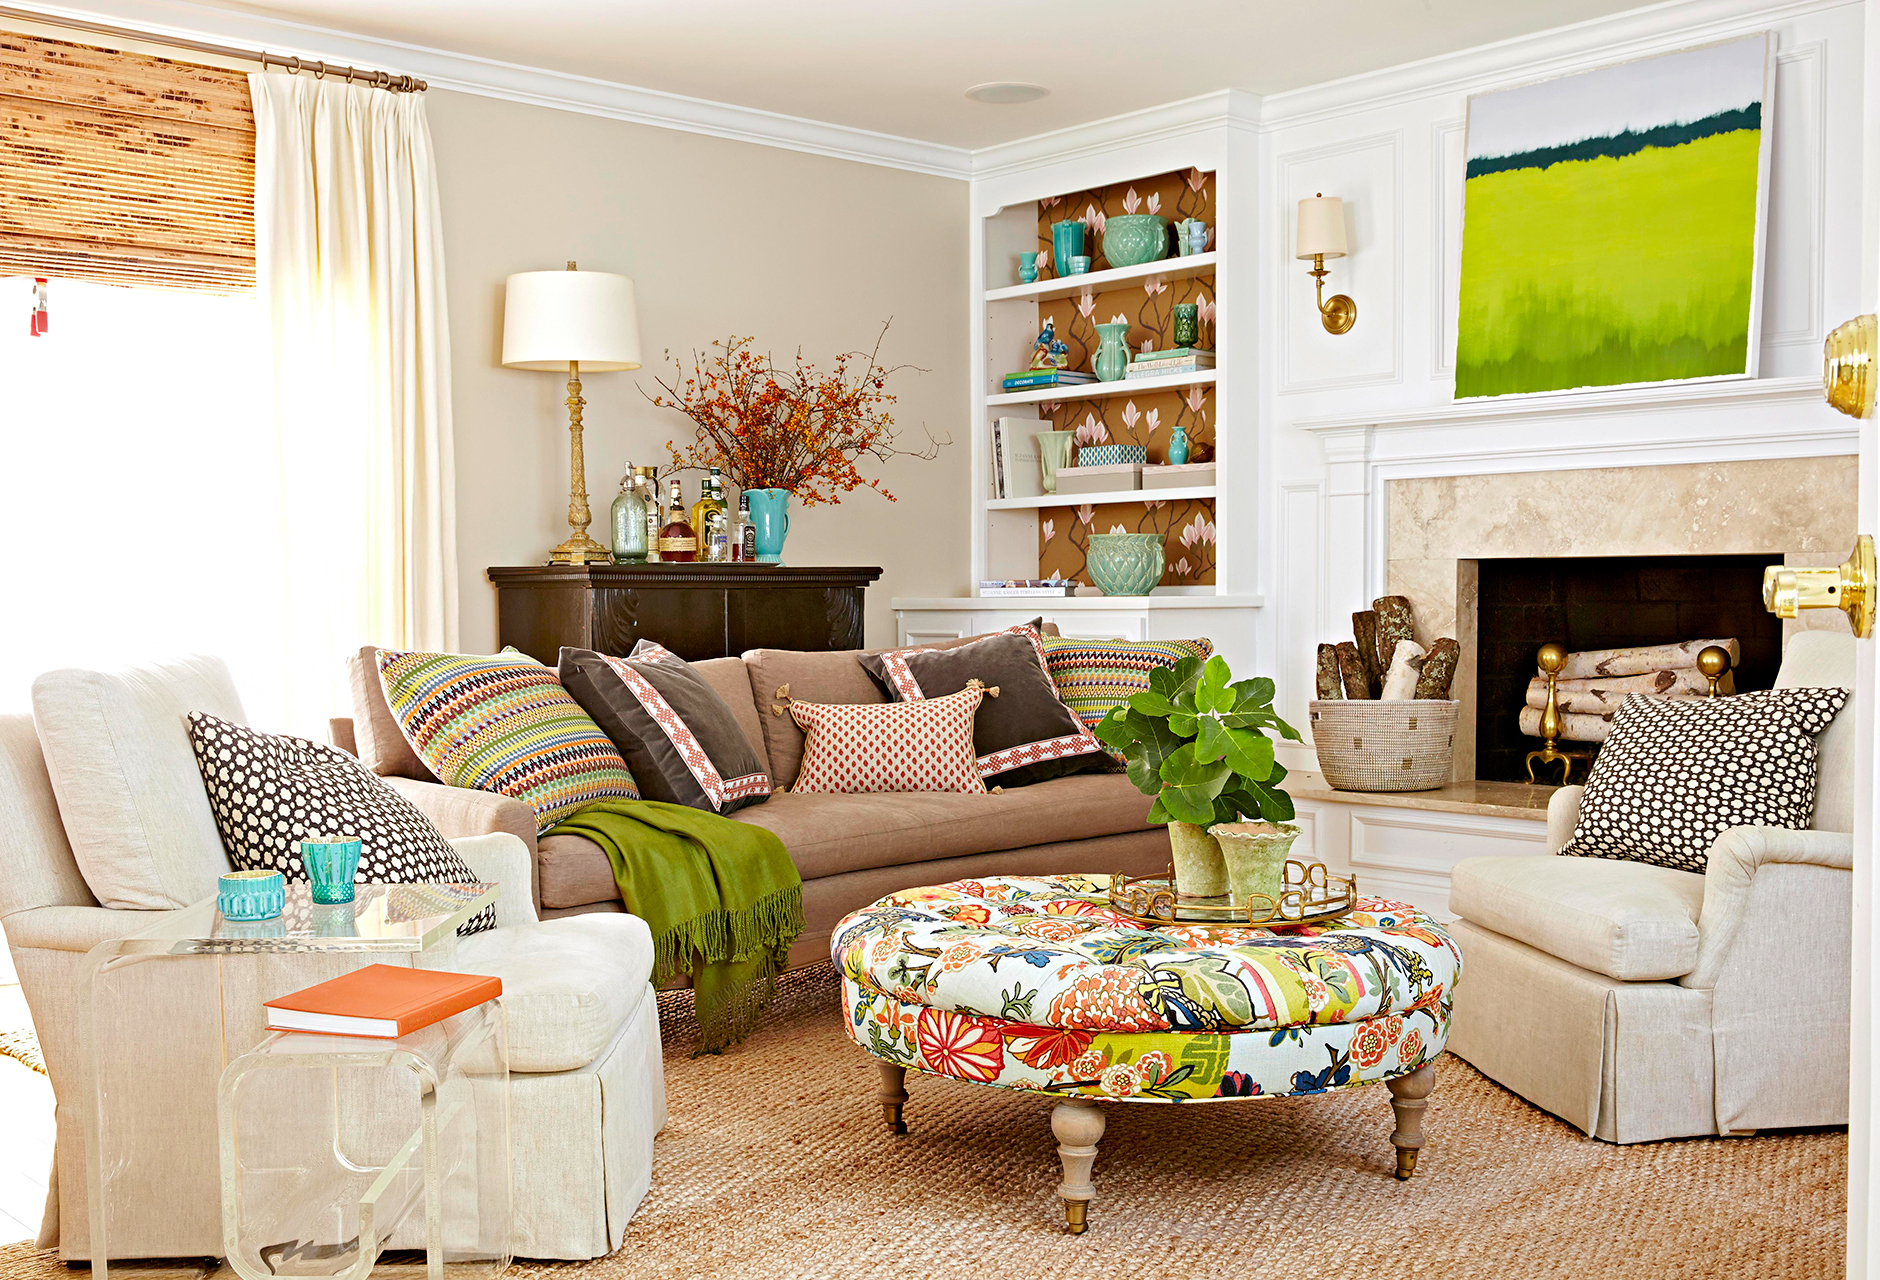 Super Are You Arranging Your Furniture Wrong Andrewgaddart Wooden Chair Designs For Living Room Andrewgaddartcom